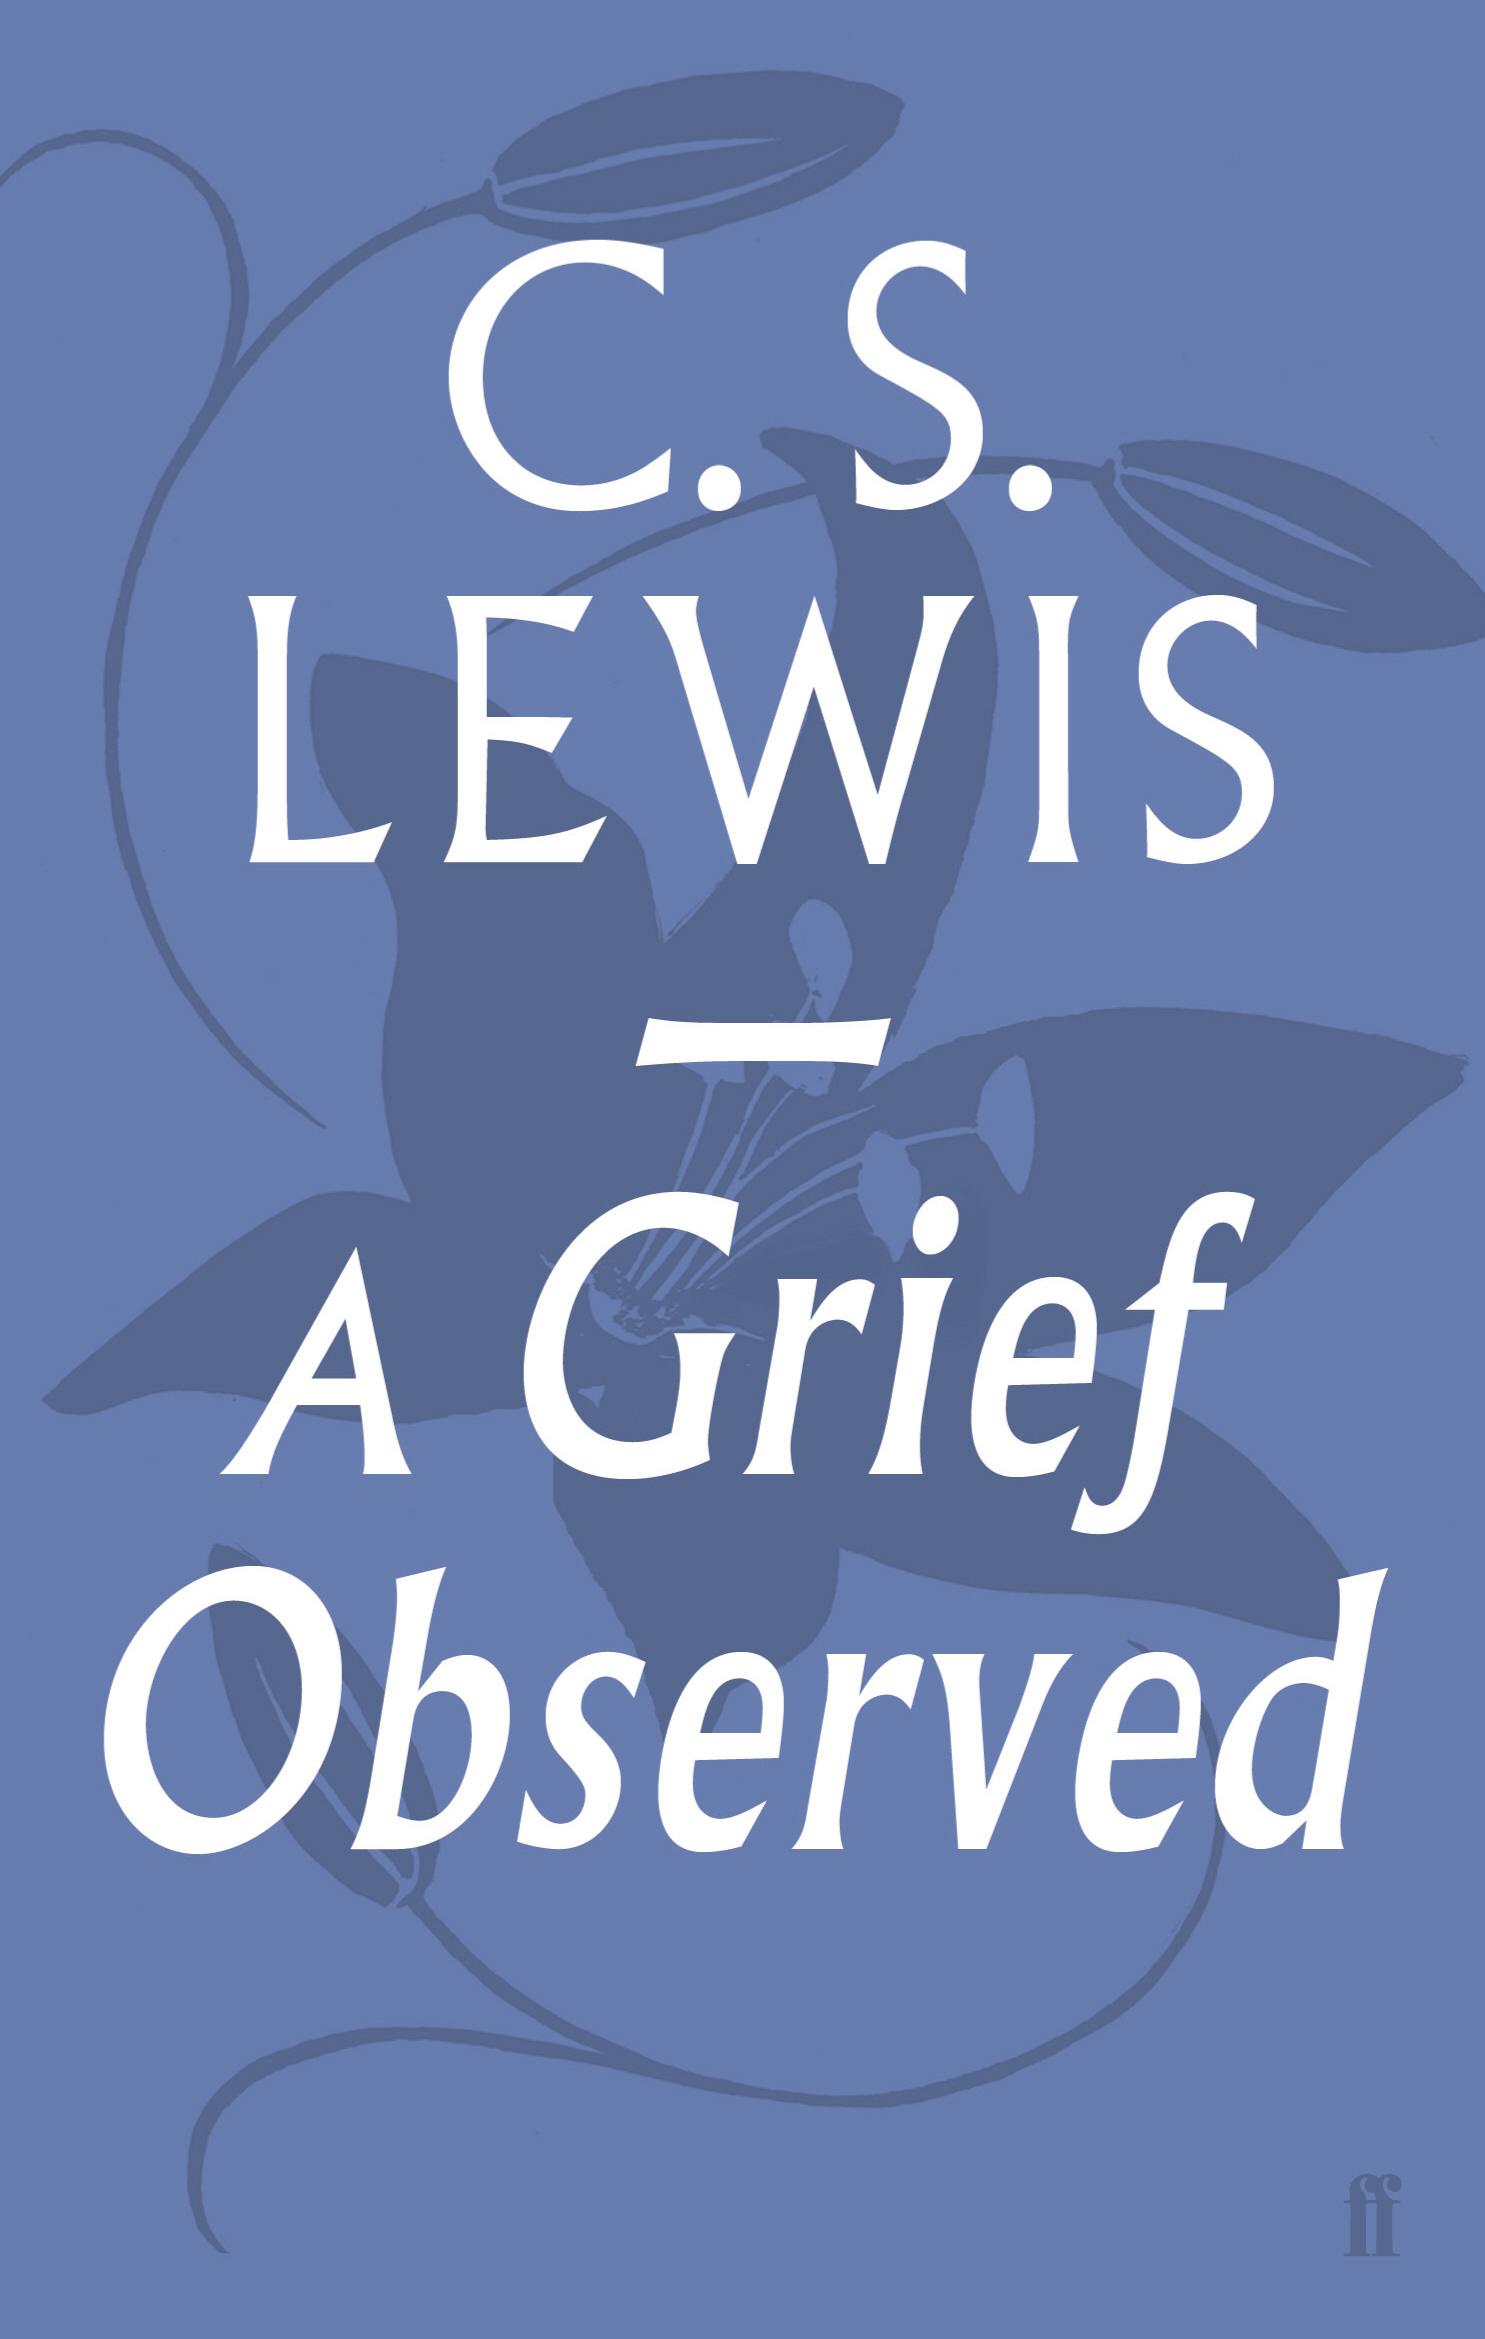 A Grief Observed by C.S. Lewis, ISBN: 9780571290680